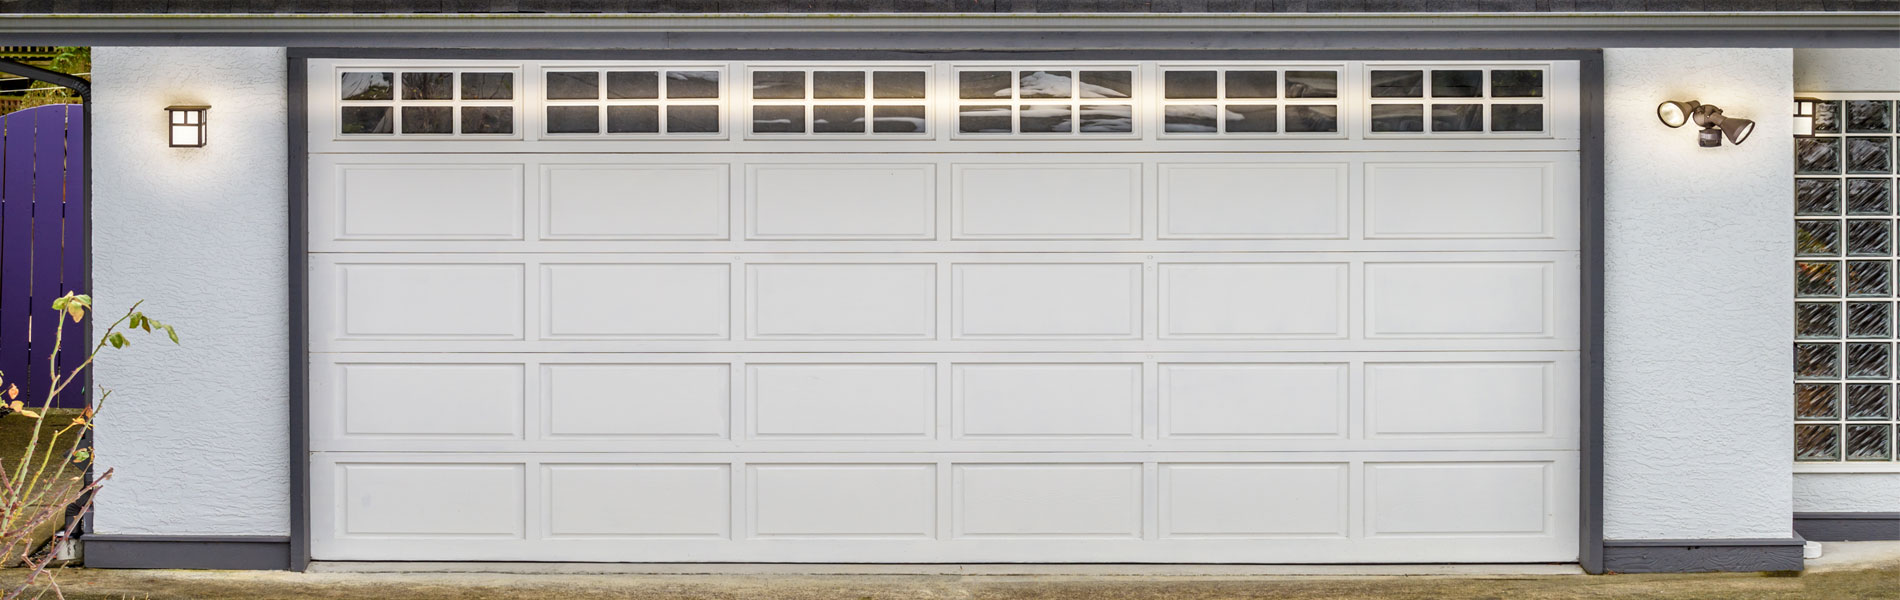 Exclusive Garage Door Service, Vancouver, WA 360-573-5368